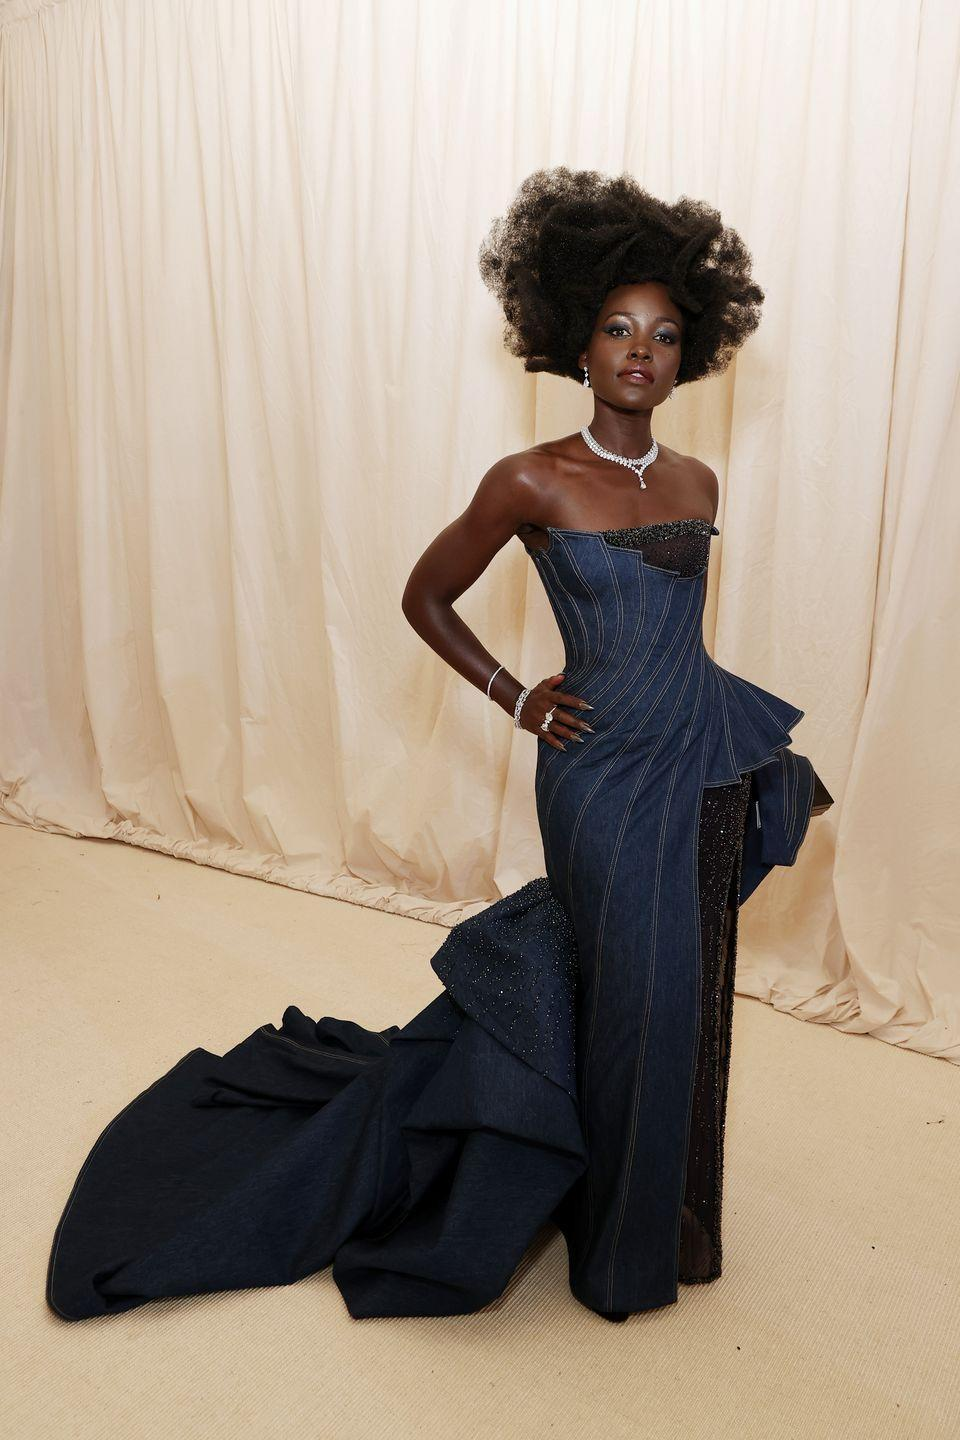 <p>While there was plenty of amazing fashion to be seen last night, the Met Gala theme of 'American Independence' was not always obvious with every single look. However, Lupita Nyong'o ticked all the right boxes with her denim Versace ballgown, which definitely nodded to all things USA.</p>